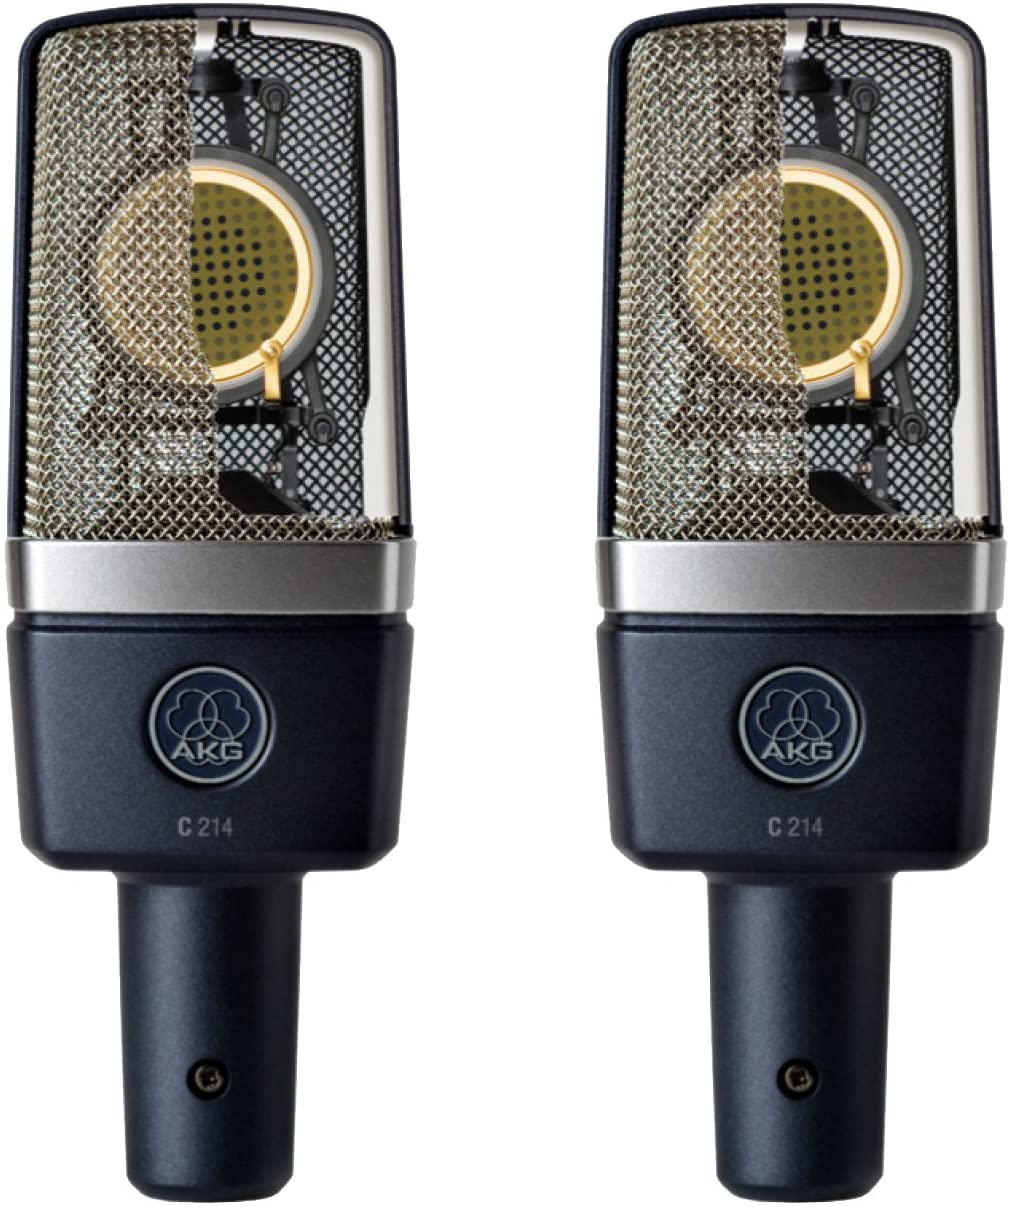 AKG 3185X00110 Matched Pair Stereo Set Professional Large-Diaphragm Condenser Microphones